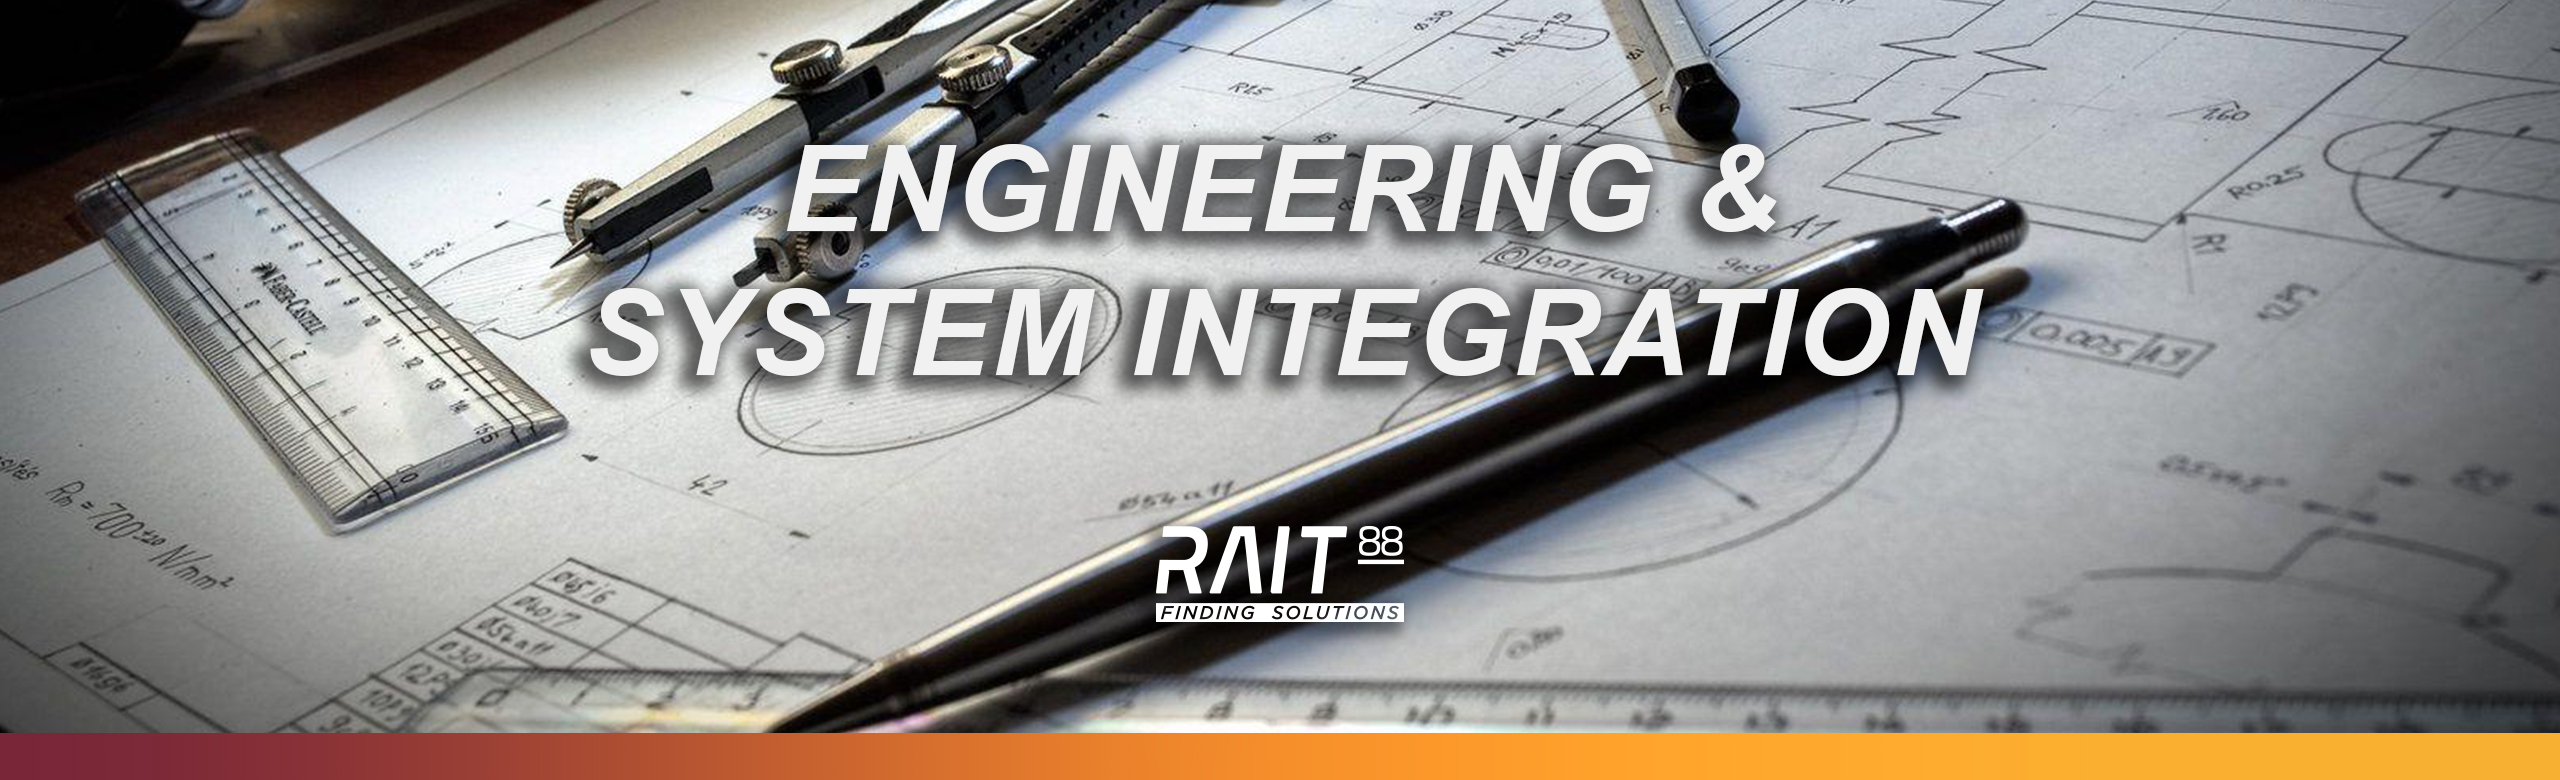 ENGINEERING AND SYSTEM INTEGRATION